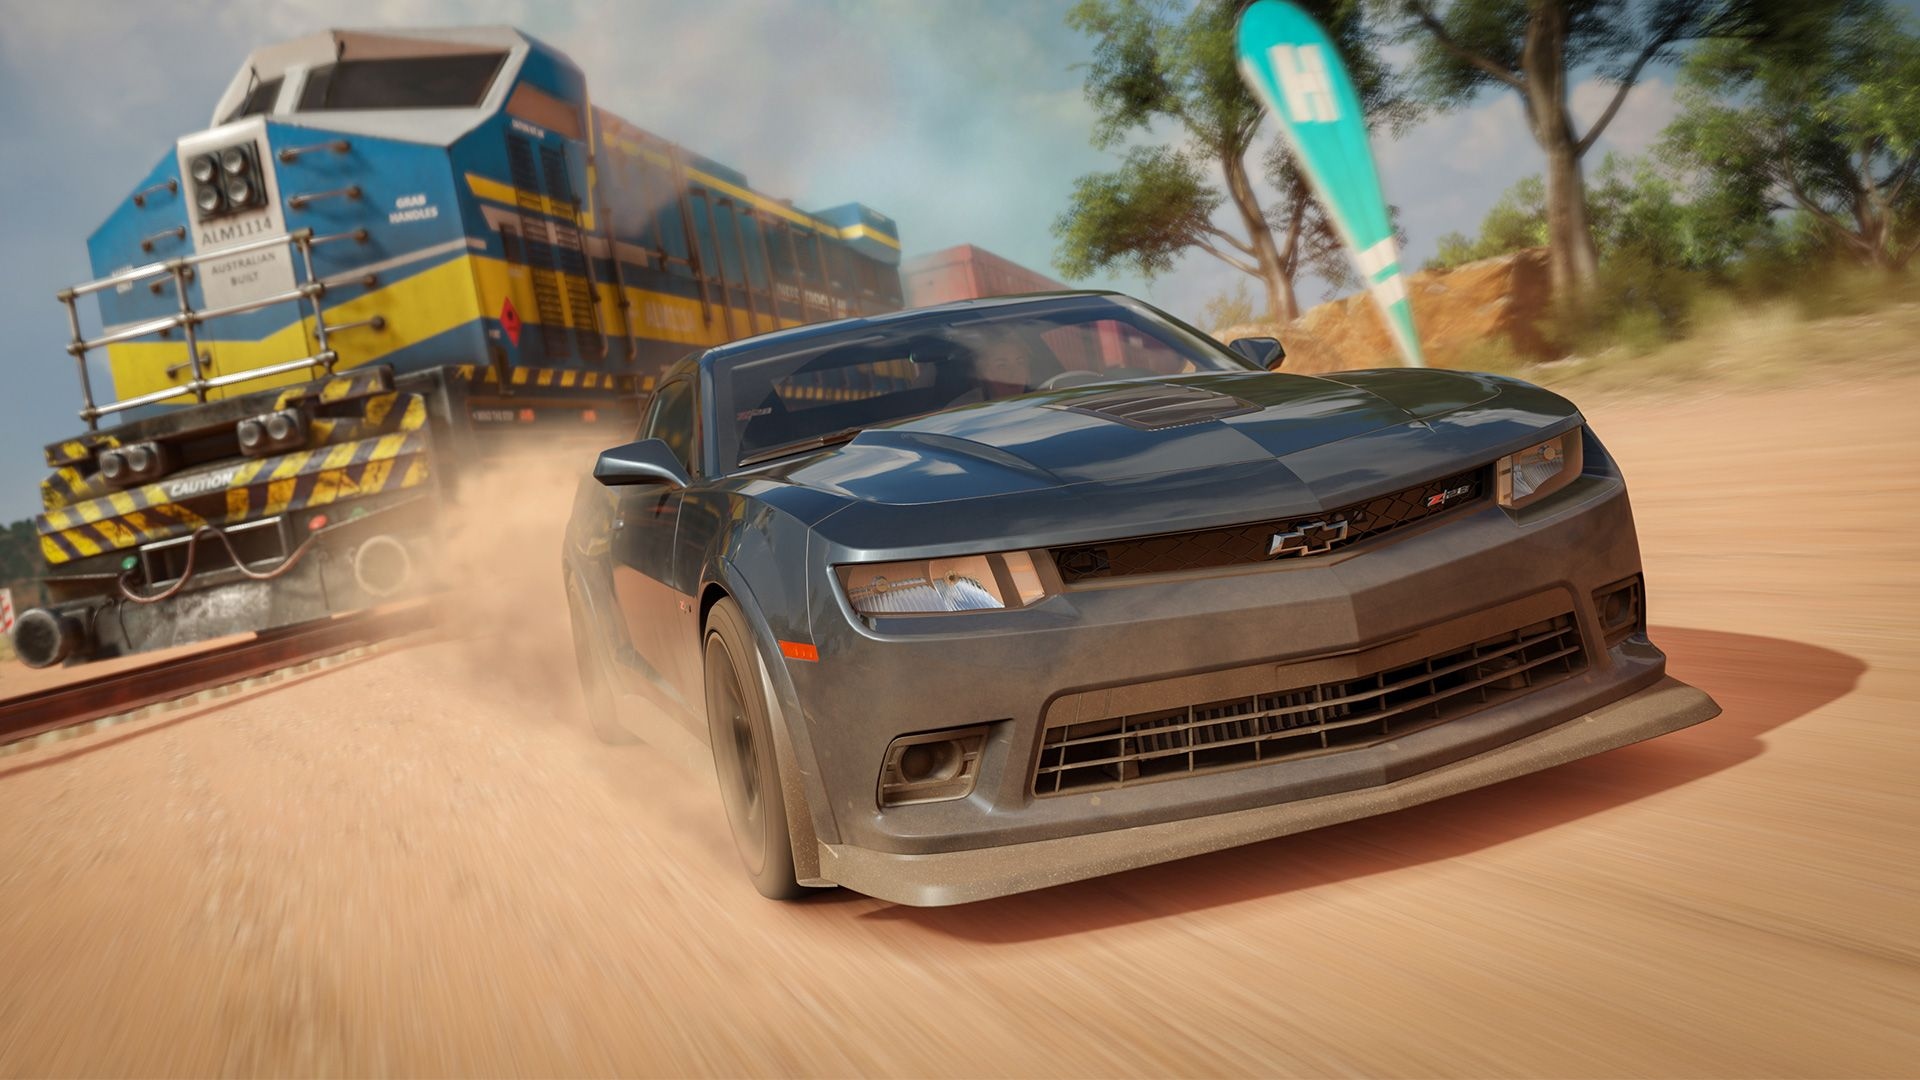 forzahorizon3_review_05_traincrossing_wm-0